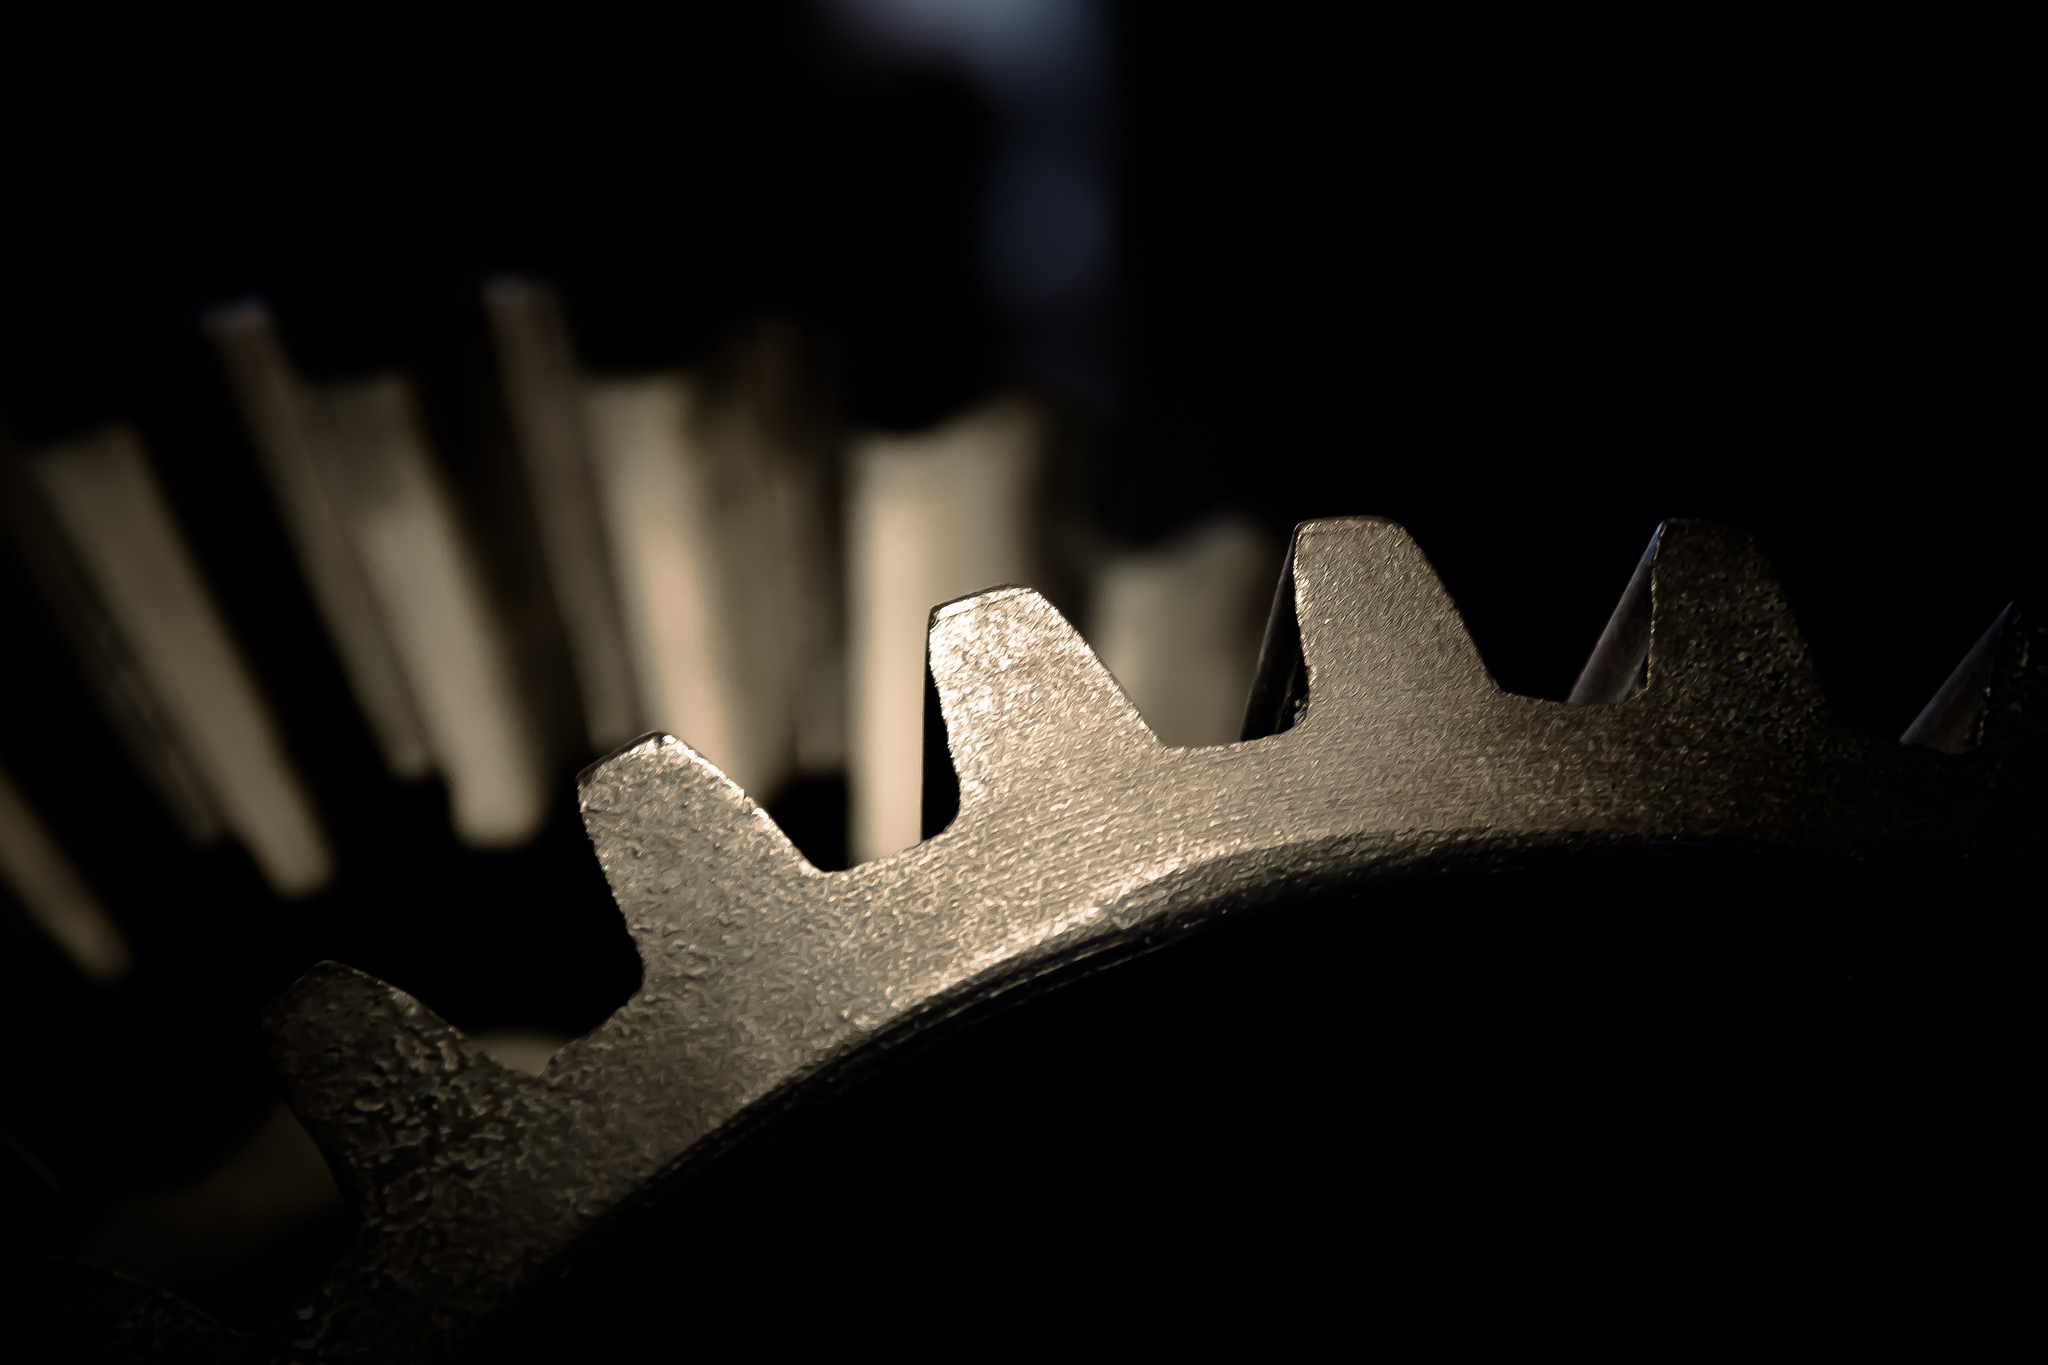 A dark photo of part of a gear by Mam'zelle Kaelle on Flickr